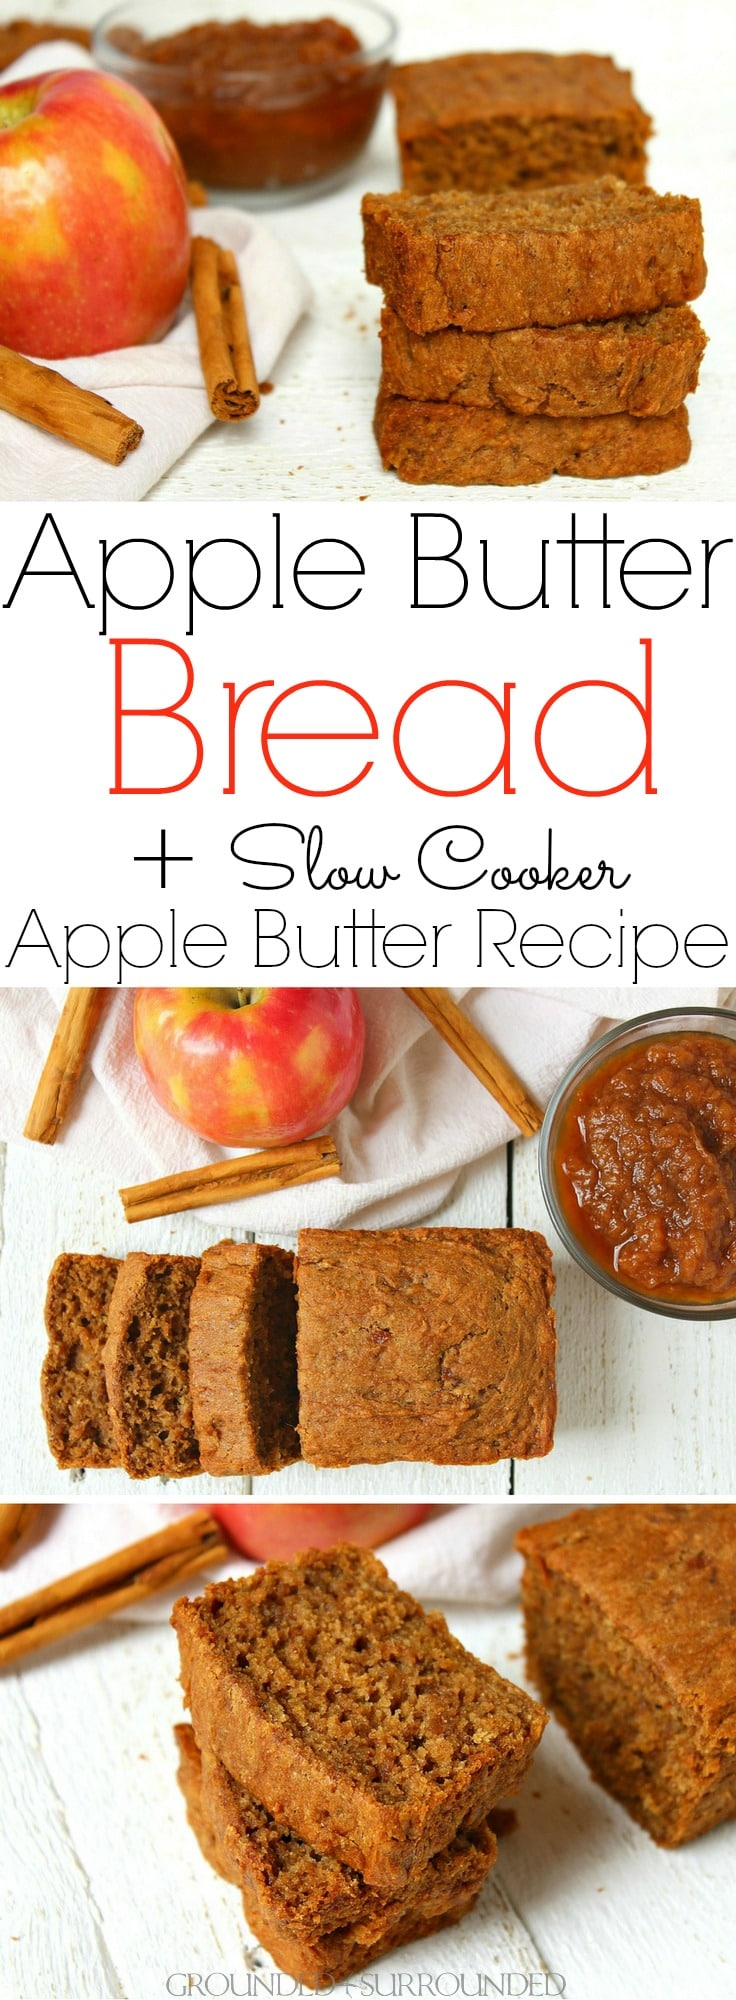 The BEST Apple Butter Bread + Slow Cooker Apple Butter Recipe | This gluten-free sweet bread is our favorite fall breakfast recipe! If you are looking for an easy sweet bread recipe to make the most of autumn flavors make this healthy crock pot apple butter AND then bake this bread! Baking when the weather turns crisp is my favorite activity. This batter makes a wonderful muffin to pack in school lunches and to freeze for those busy mornings too! #glutenfree #cleaneating #fall